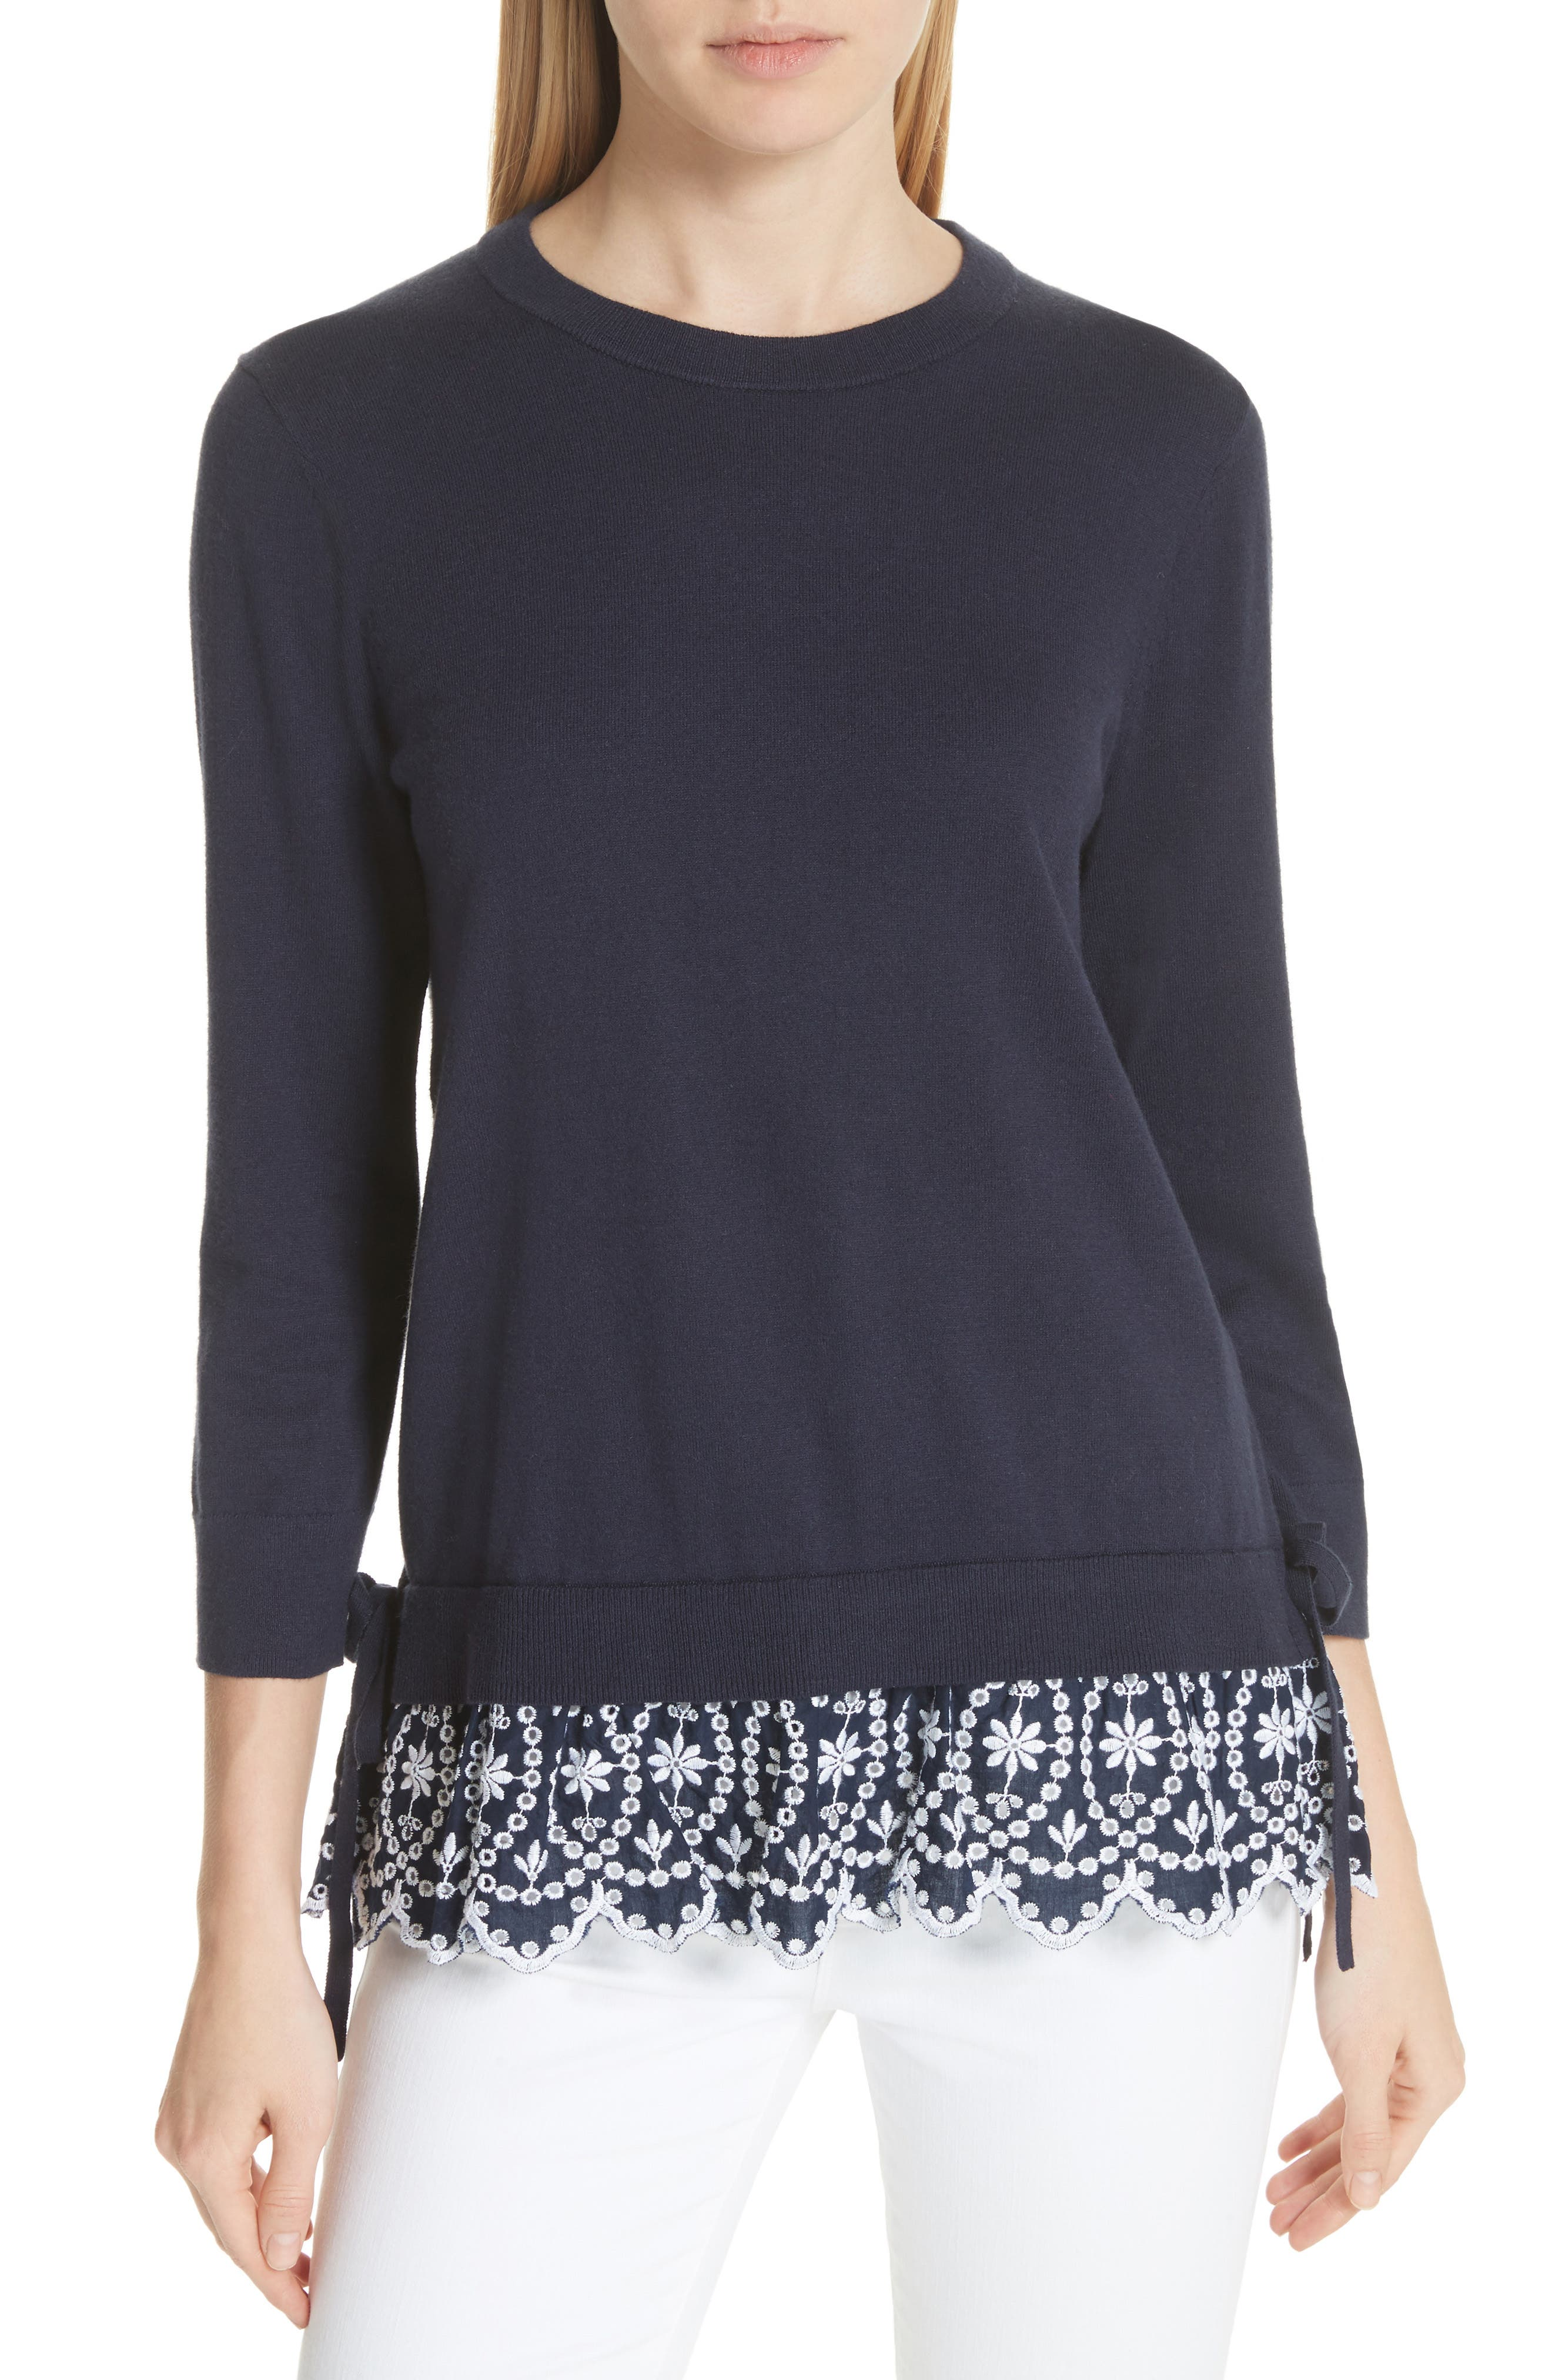 KATE SPADE NEW YORK,                             eyelet hem sweater,                             Main thumbnail 1, color,                             473